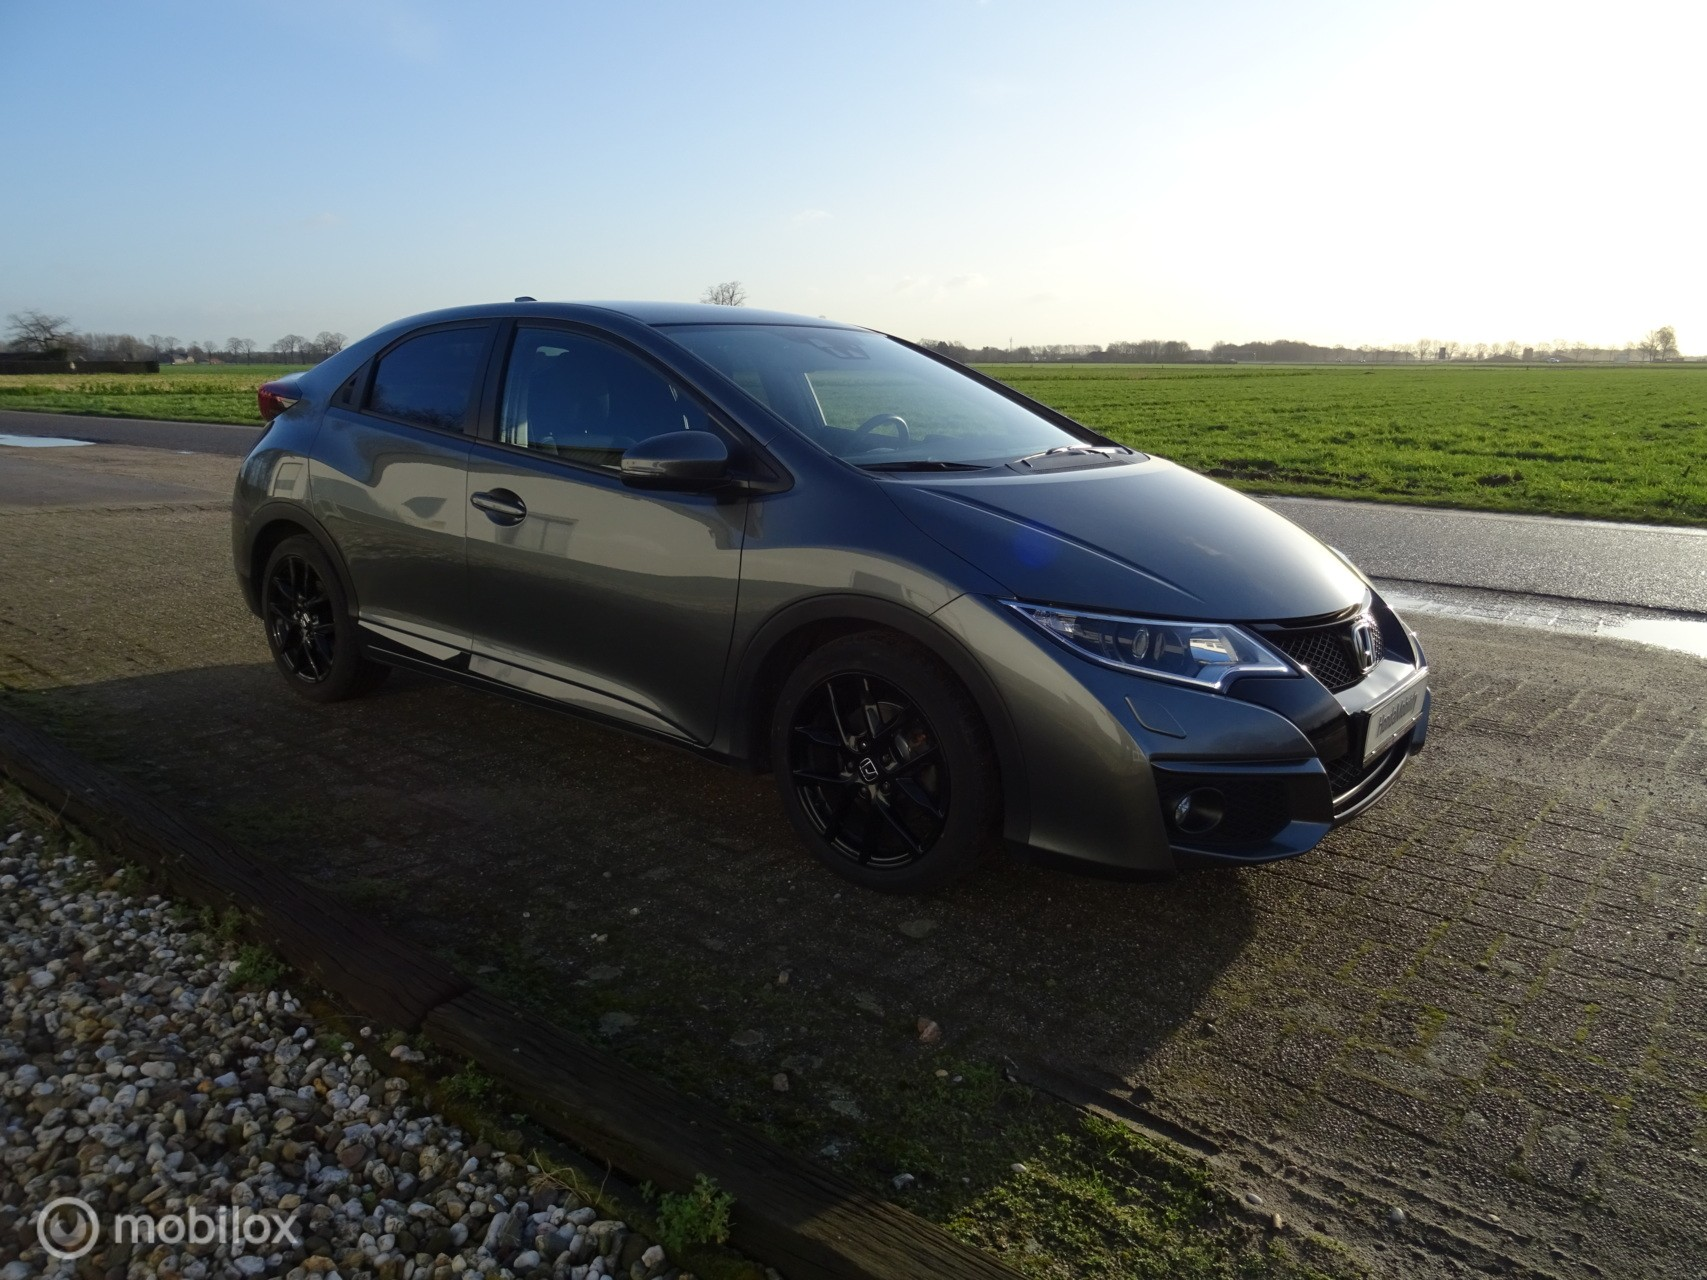 Honda Civic 1.8 Elegance business edition